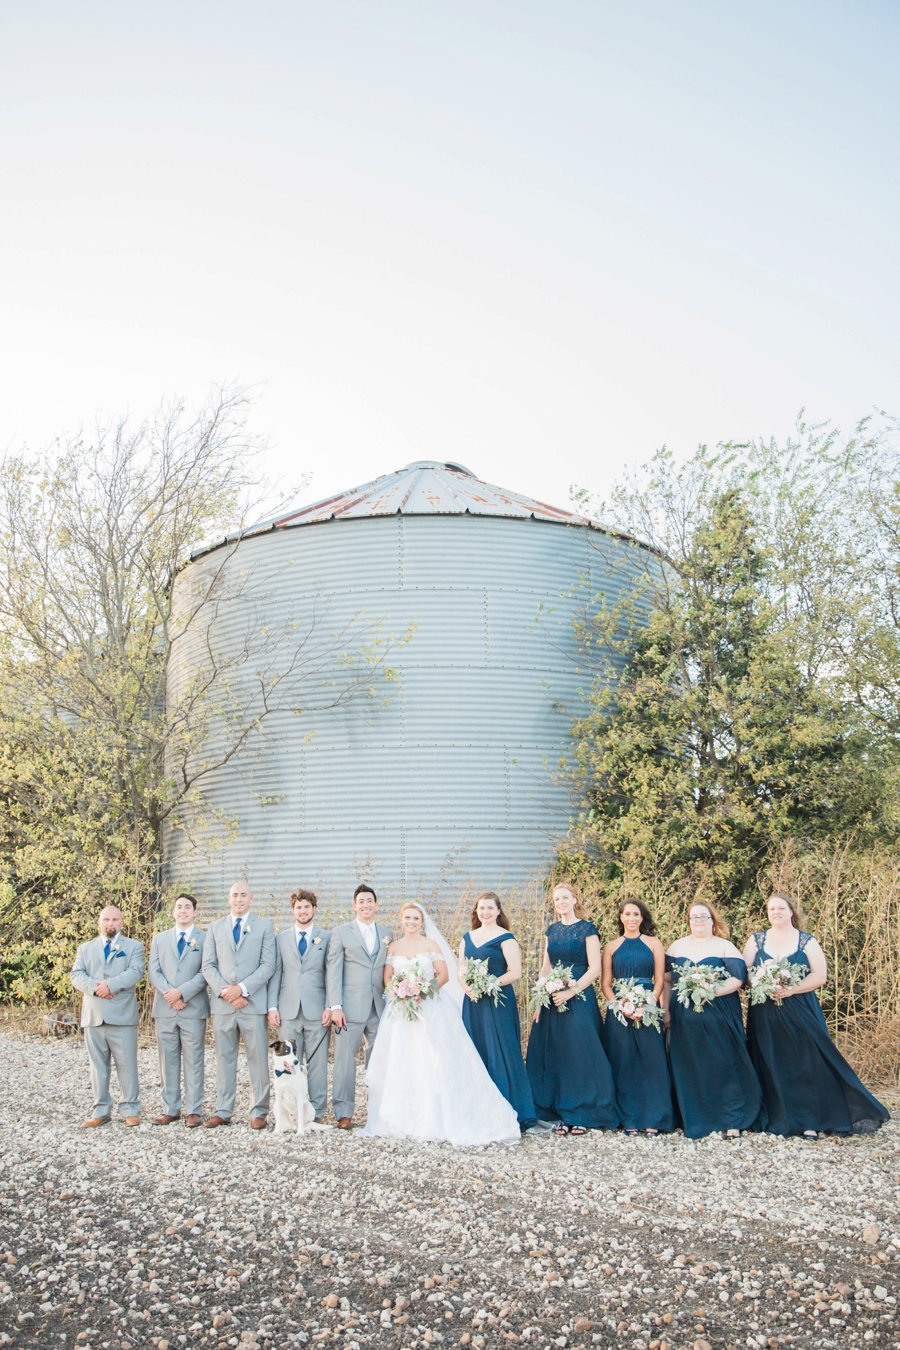 An Eclectic, Rustic Pink & Blue Texas Wedding Day via TheELD.com